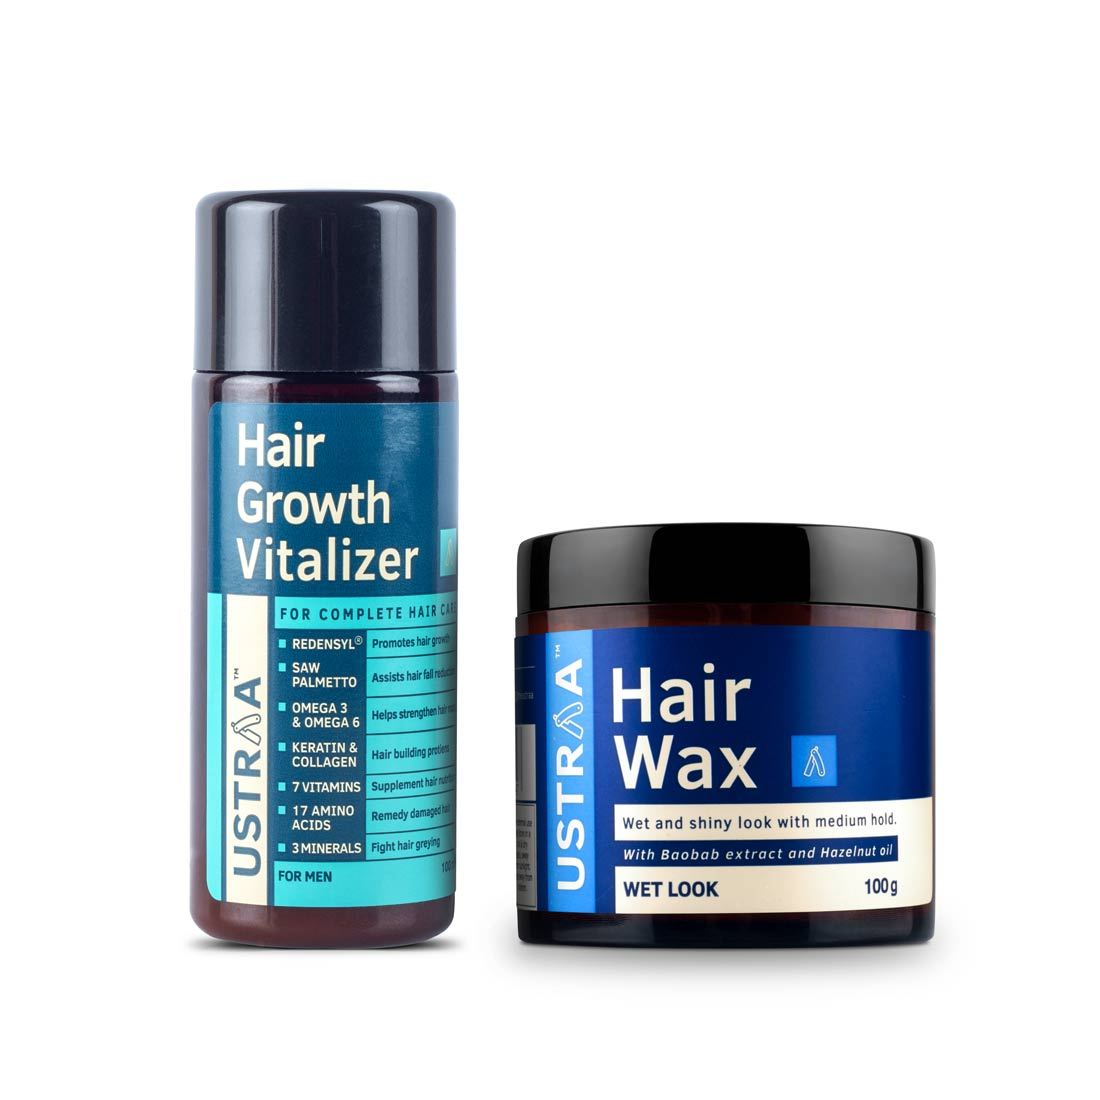 Hair Growth Vitalizer & Hair Wax- Wet Look